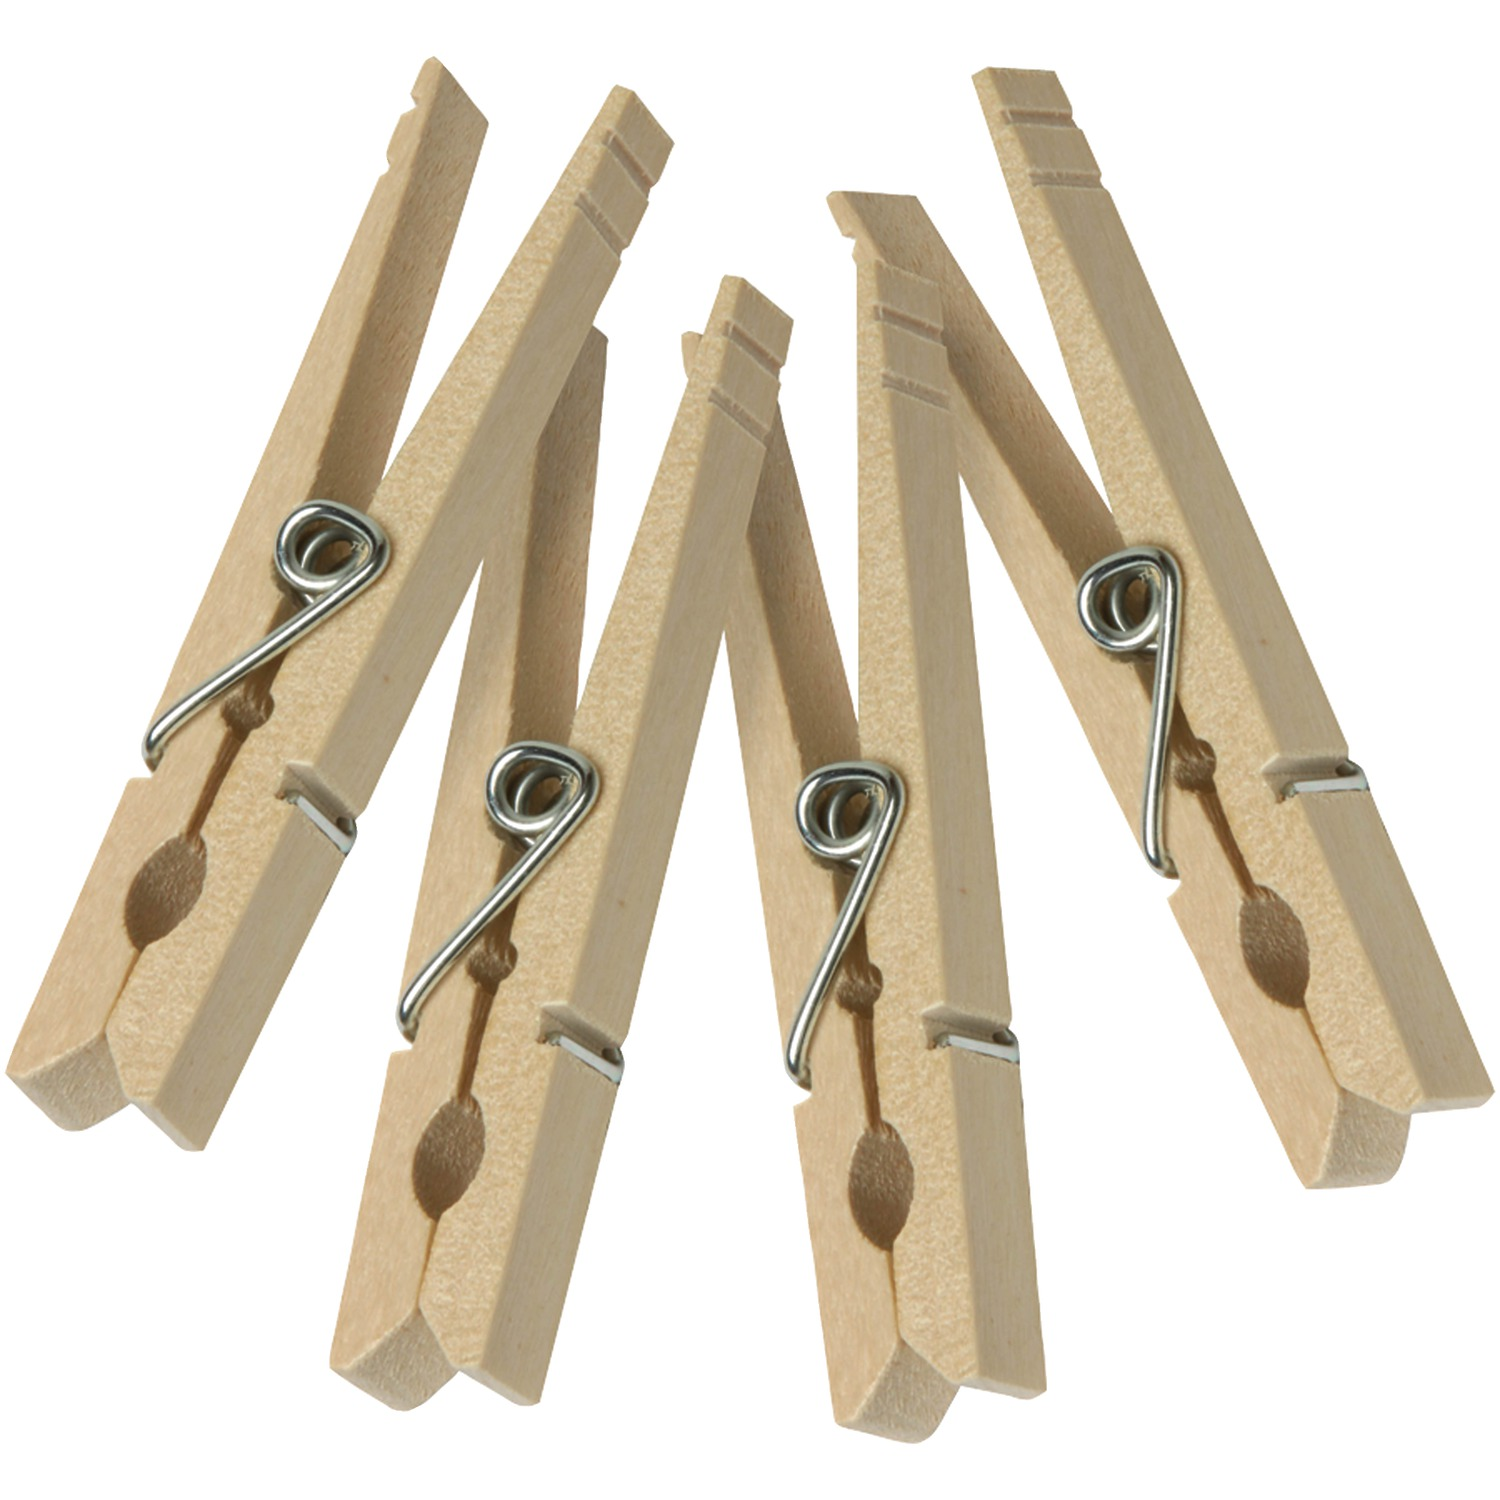 Honey-Can-Do DRY-01375 Classic Clothespin, 10 lb, Spring Opening, Wood, Natural